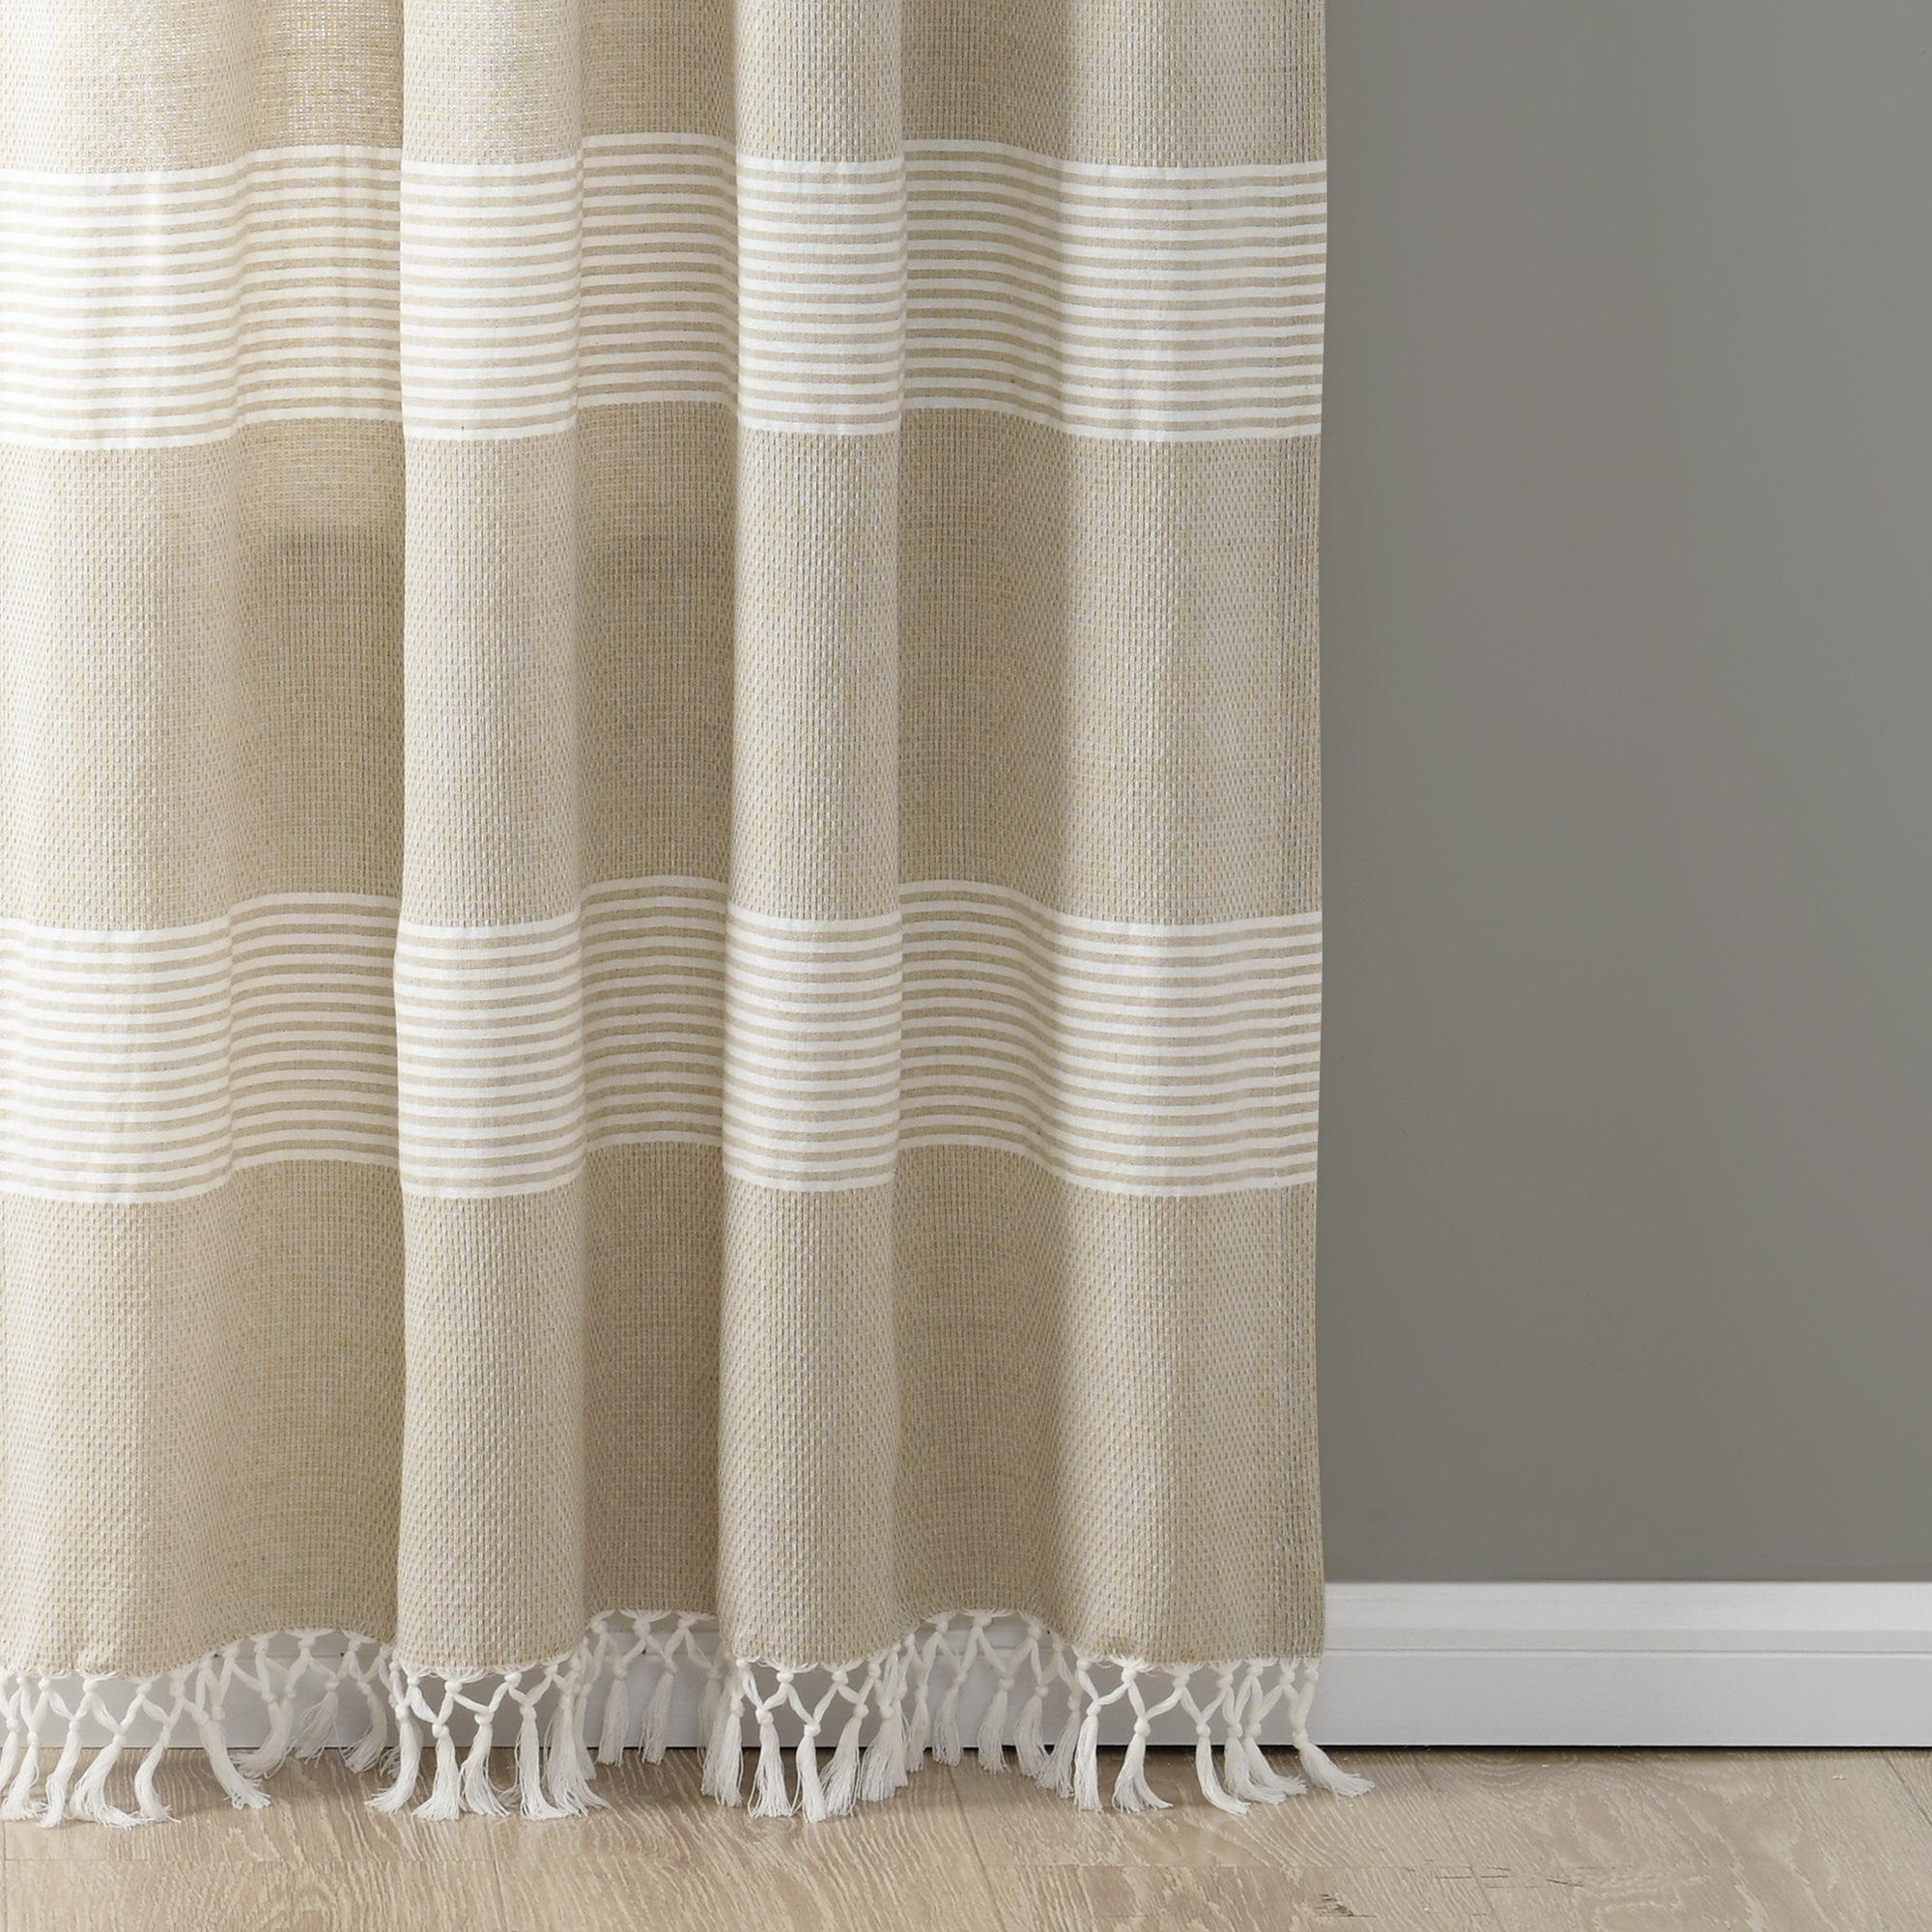 Lush Decor Tucker Stripe Yarn Dyed Cotton Knotted Tassel Window Curtain  Panel Pair Throughout Newest Ombre Stripe Yarn Dyed Cotton Window Curtain Panel Pairs (Gallery 17 of 20)